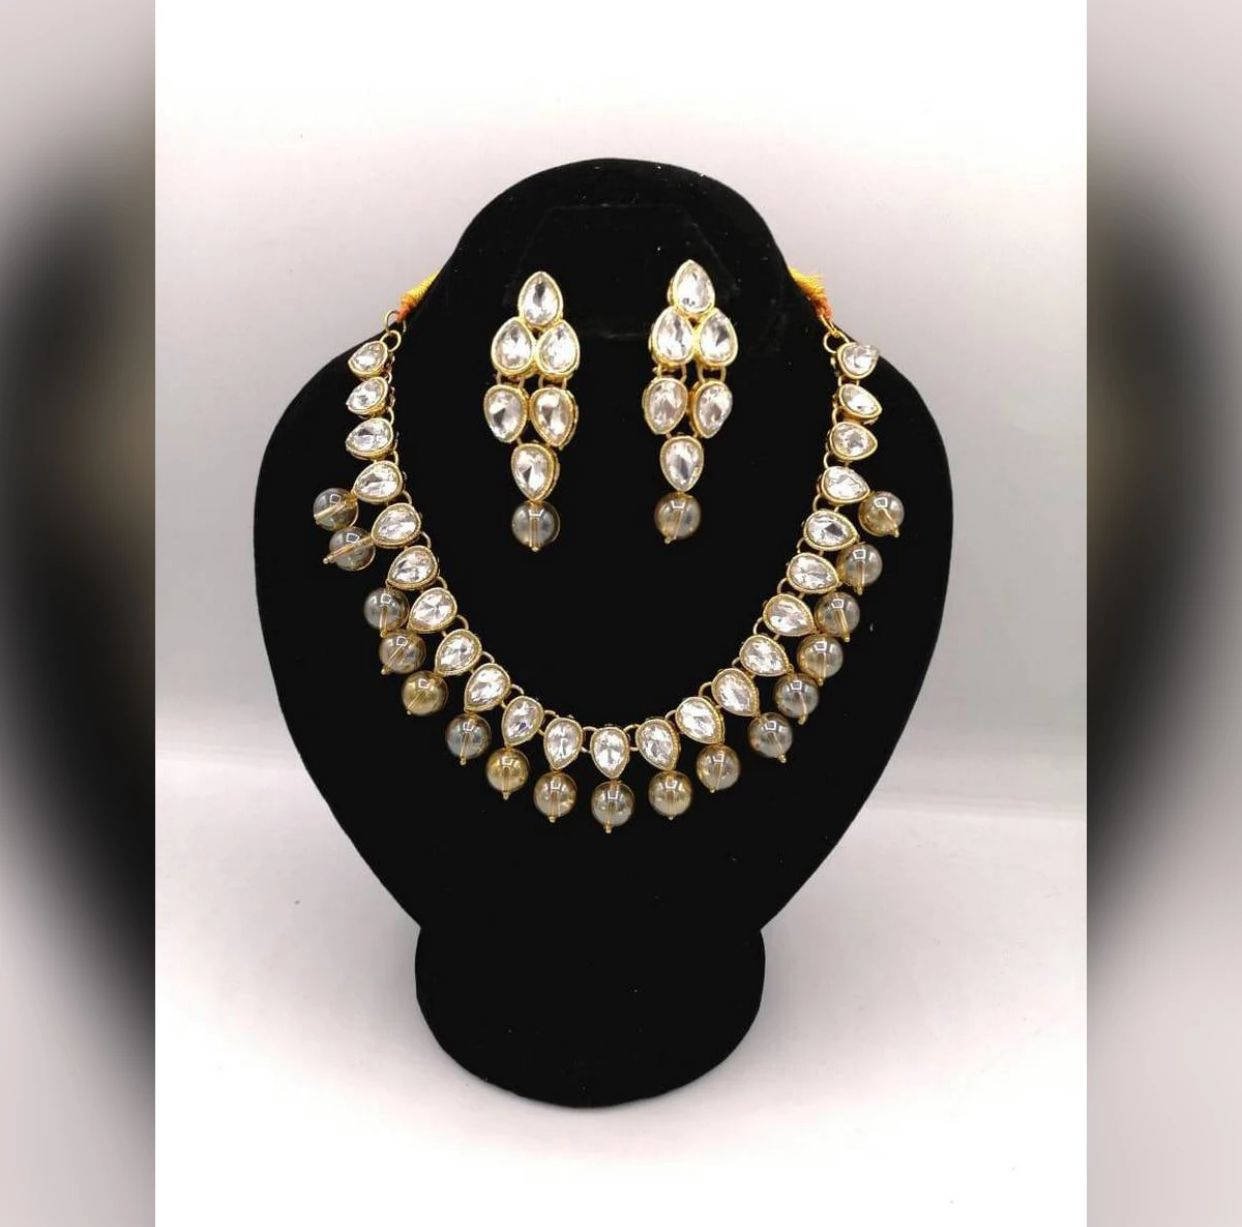 Fashion Infinity Different Colour Jewellery Necklace Bridal kundan set jewellery for Women Party,Wedding